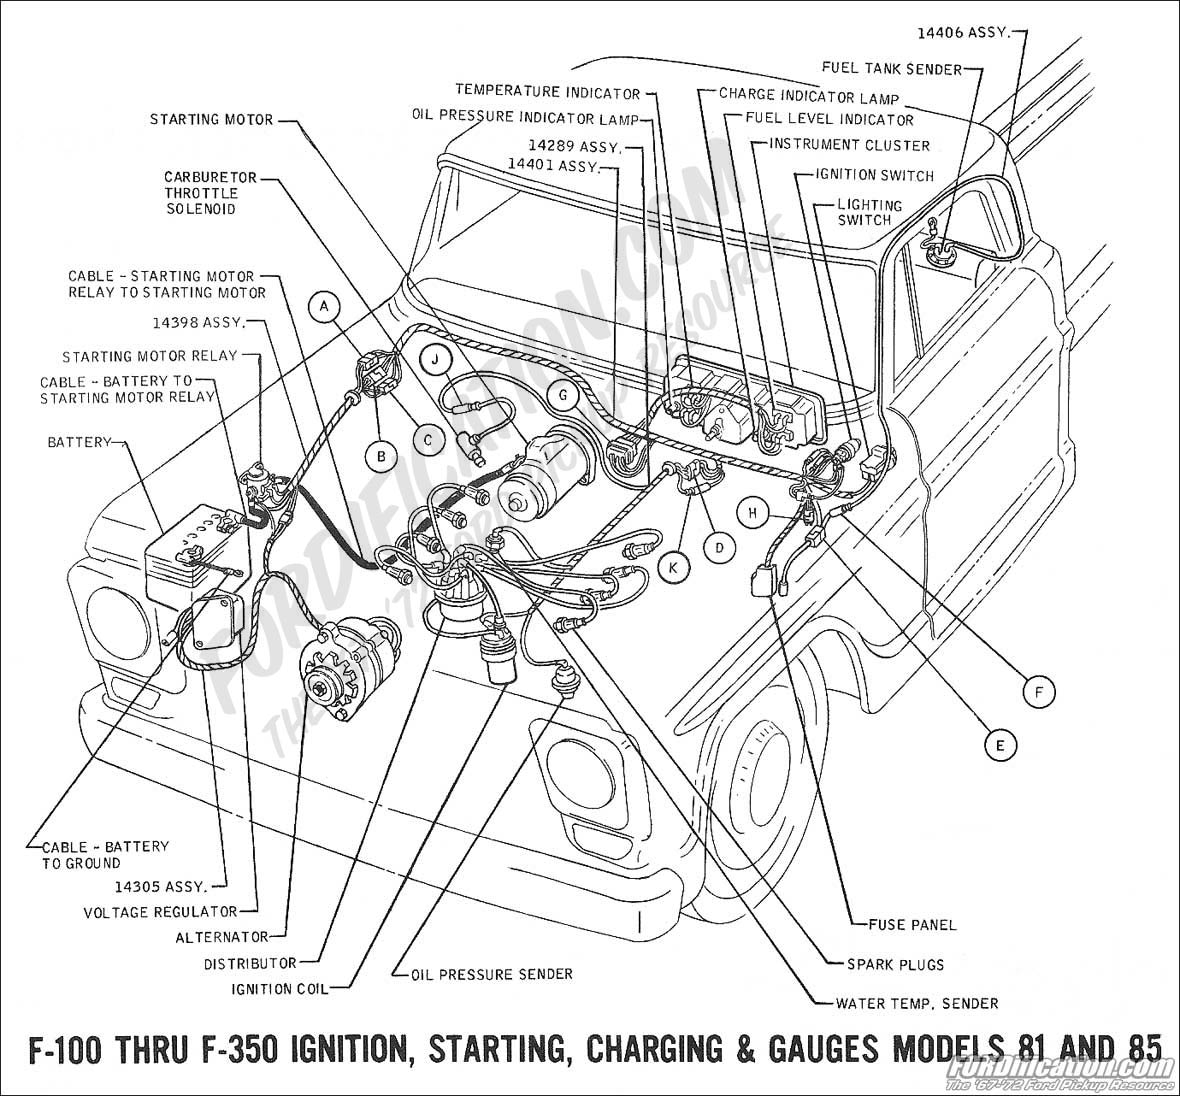 Schematics_h on 2001 Chevy Tahoe Transmission Diagram